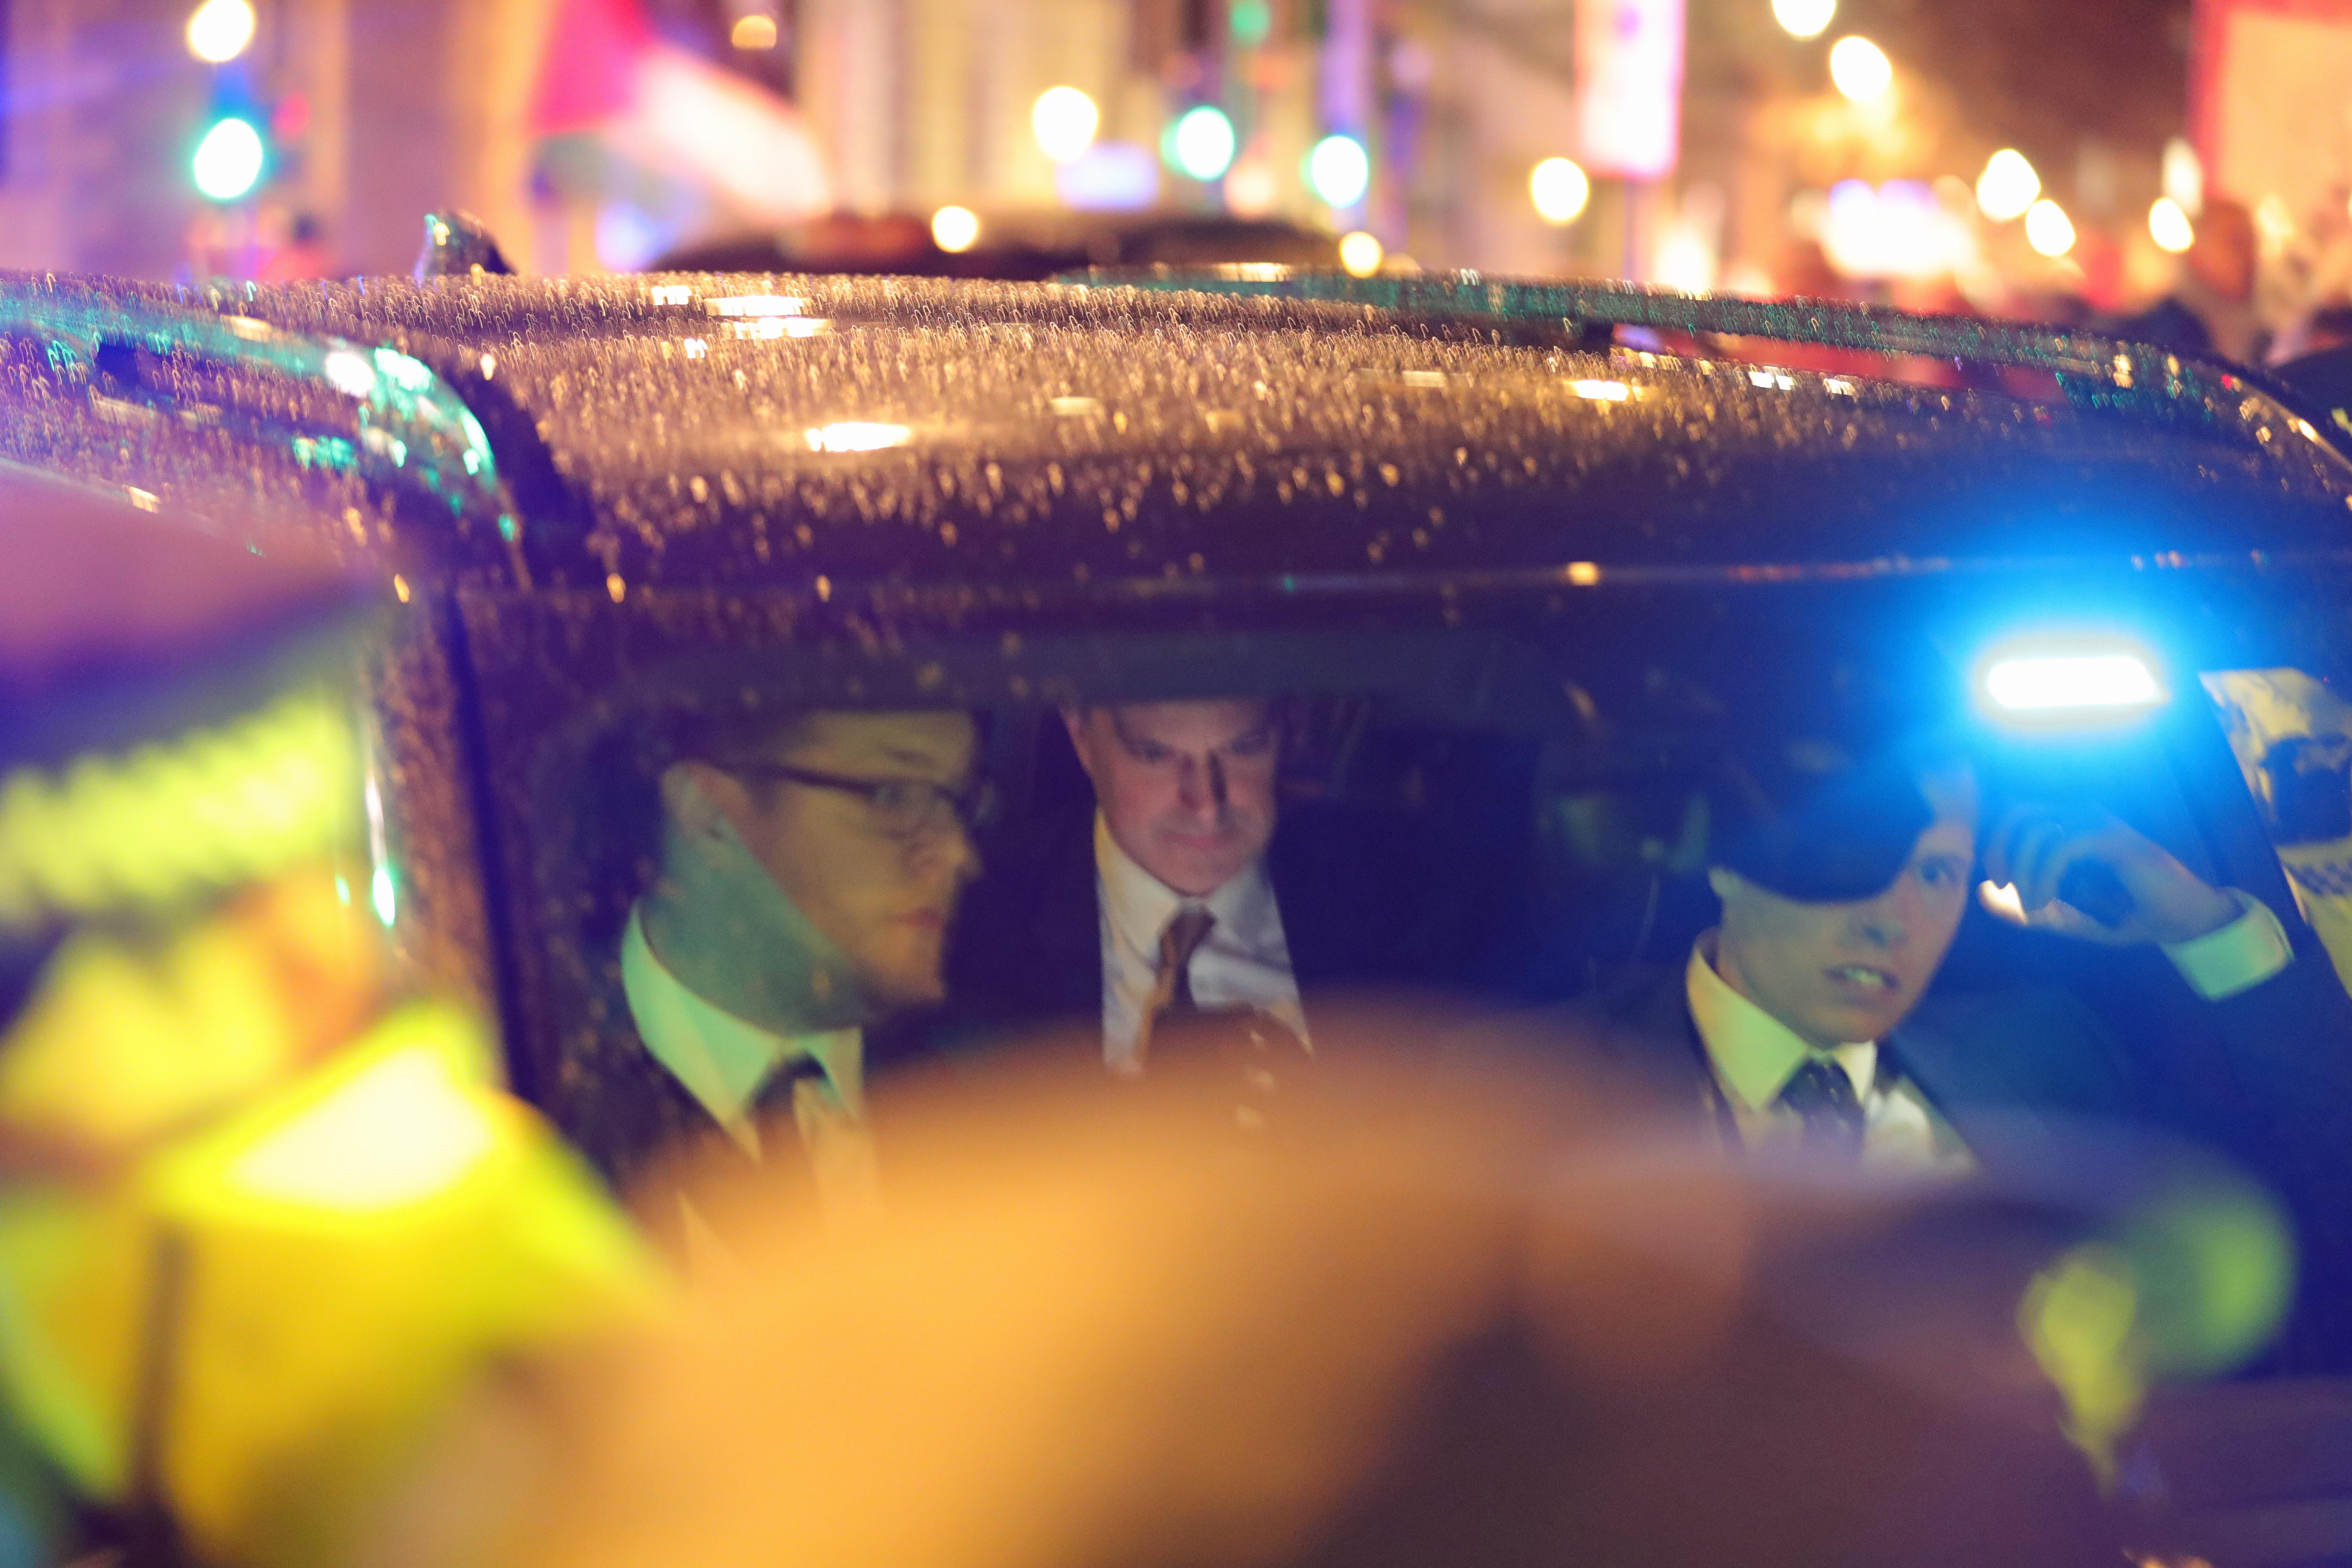 Protesters obstruct Northern Ireland Secretary Julian Smith in a minsterial car as he leaves the Houses of Parliament in London, as their protest against government plans to deport 50 people to Jamaica continues.